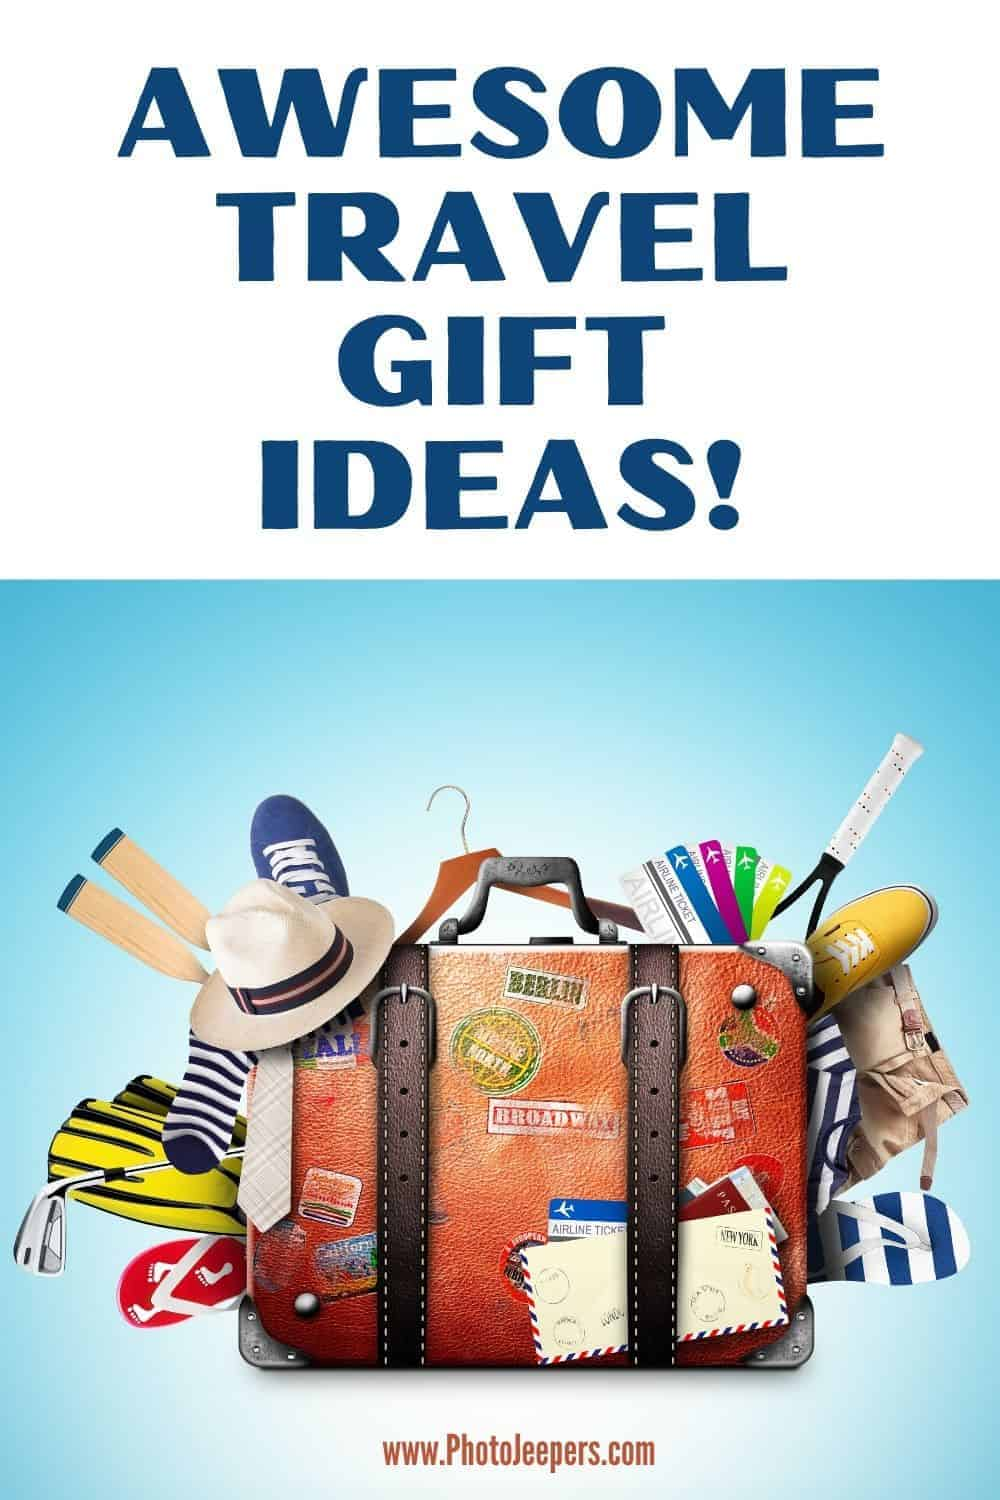 Awesome travel gift ideas